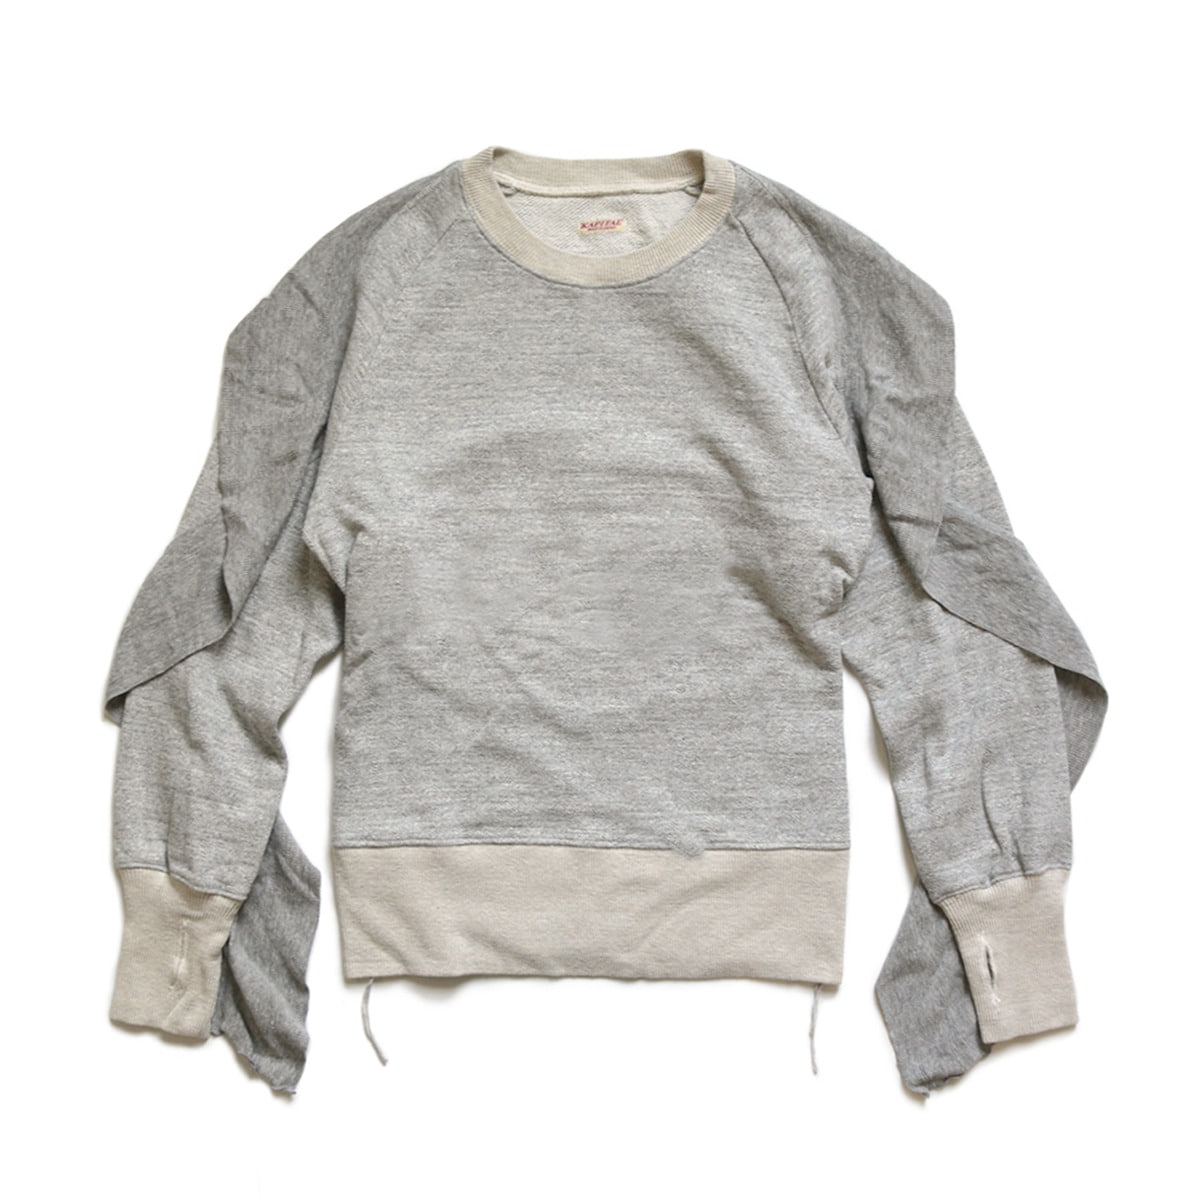 [KAPITAL] TOP FLEECE KNIT FRILLED SLEEVE BANDANA SWT 'GREY'